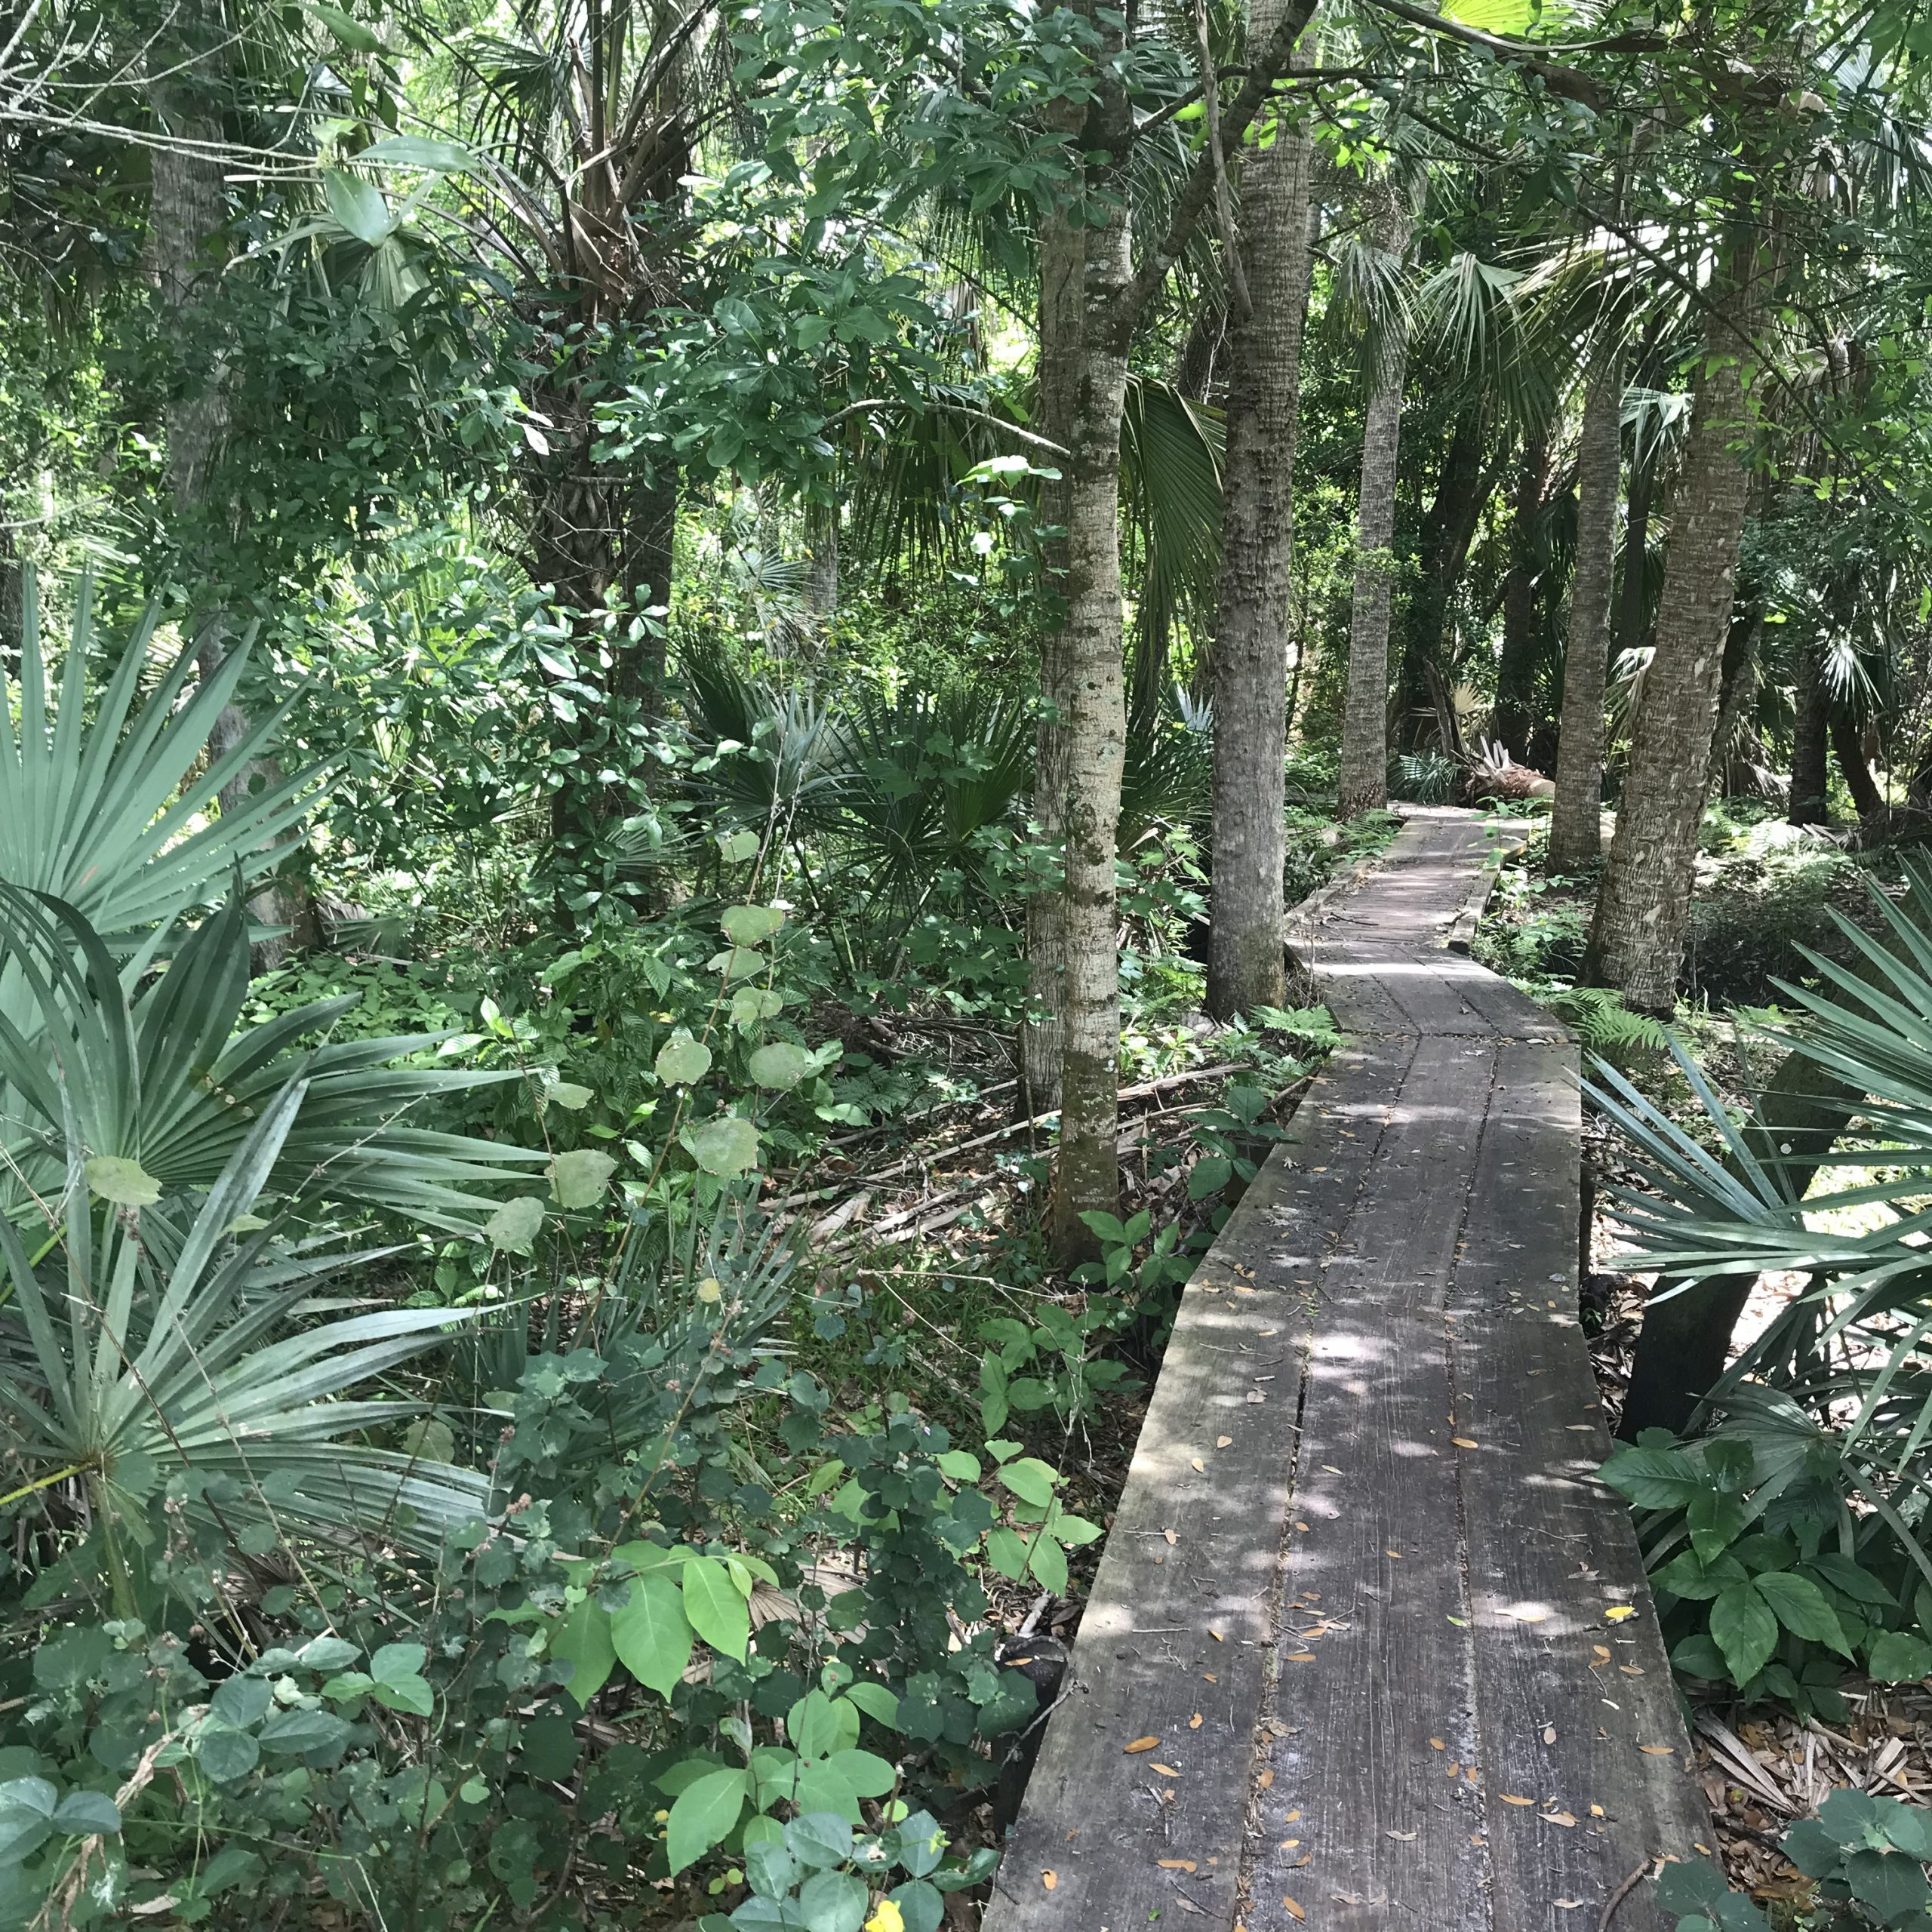 So much green to see when you run on all kinds of trails